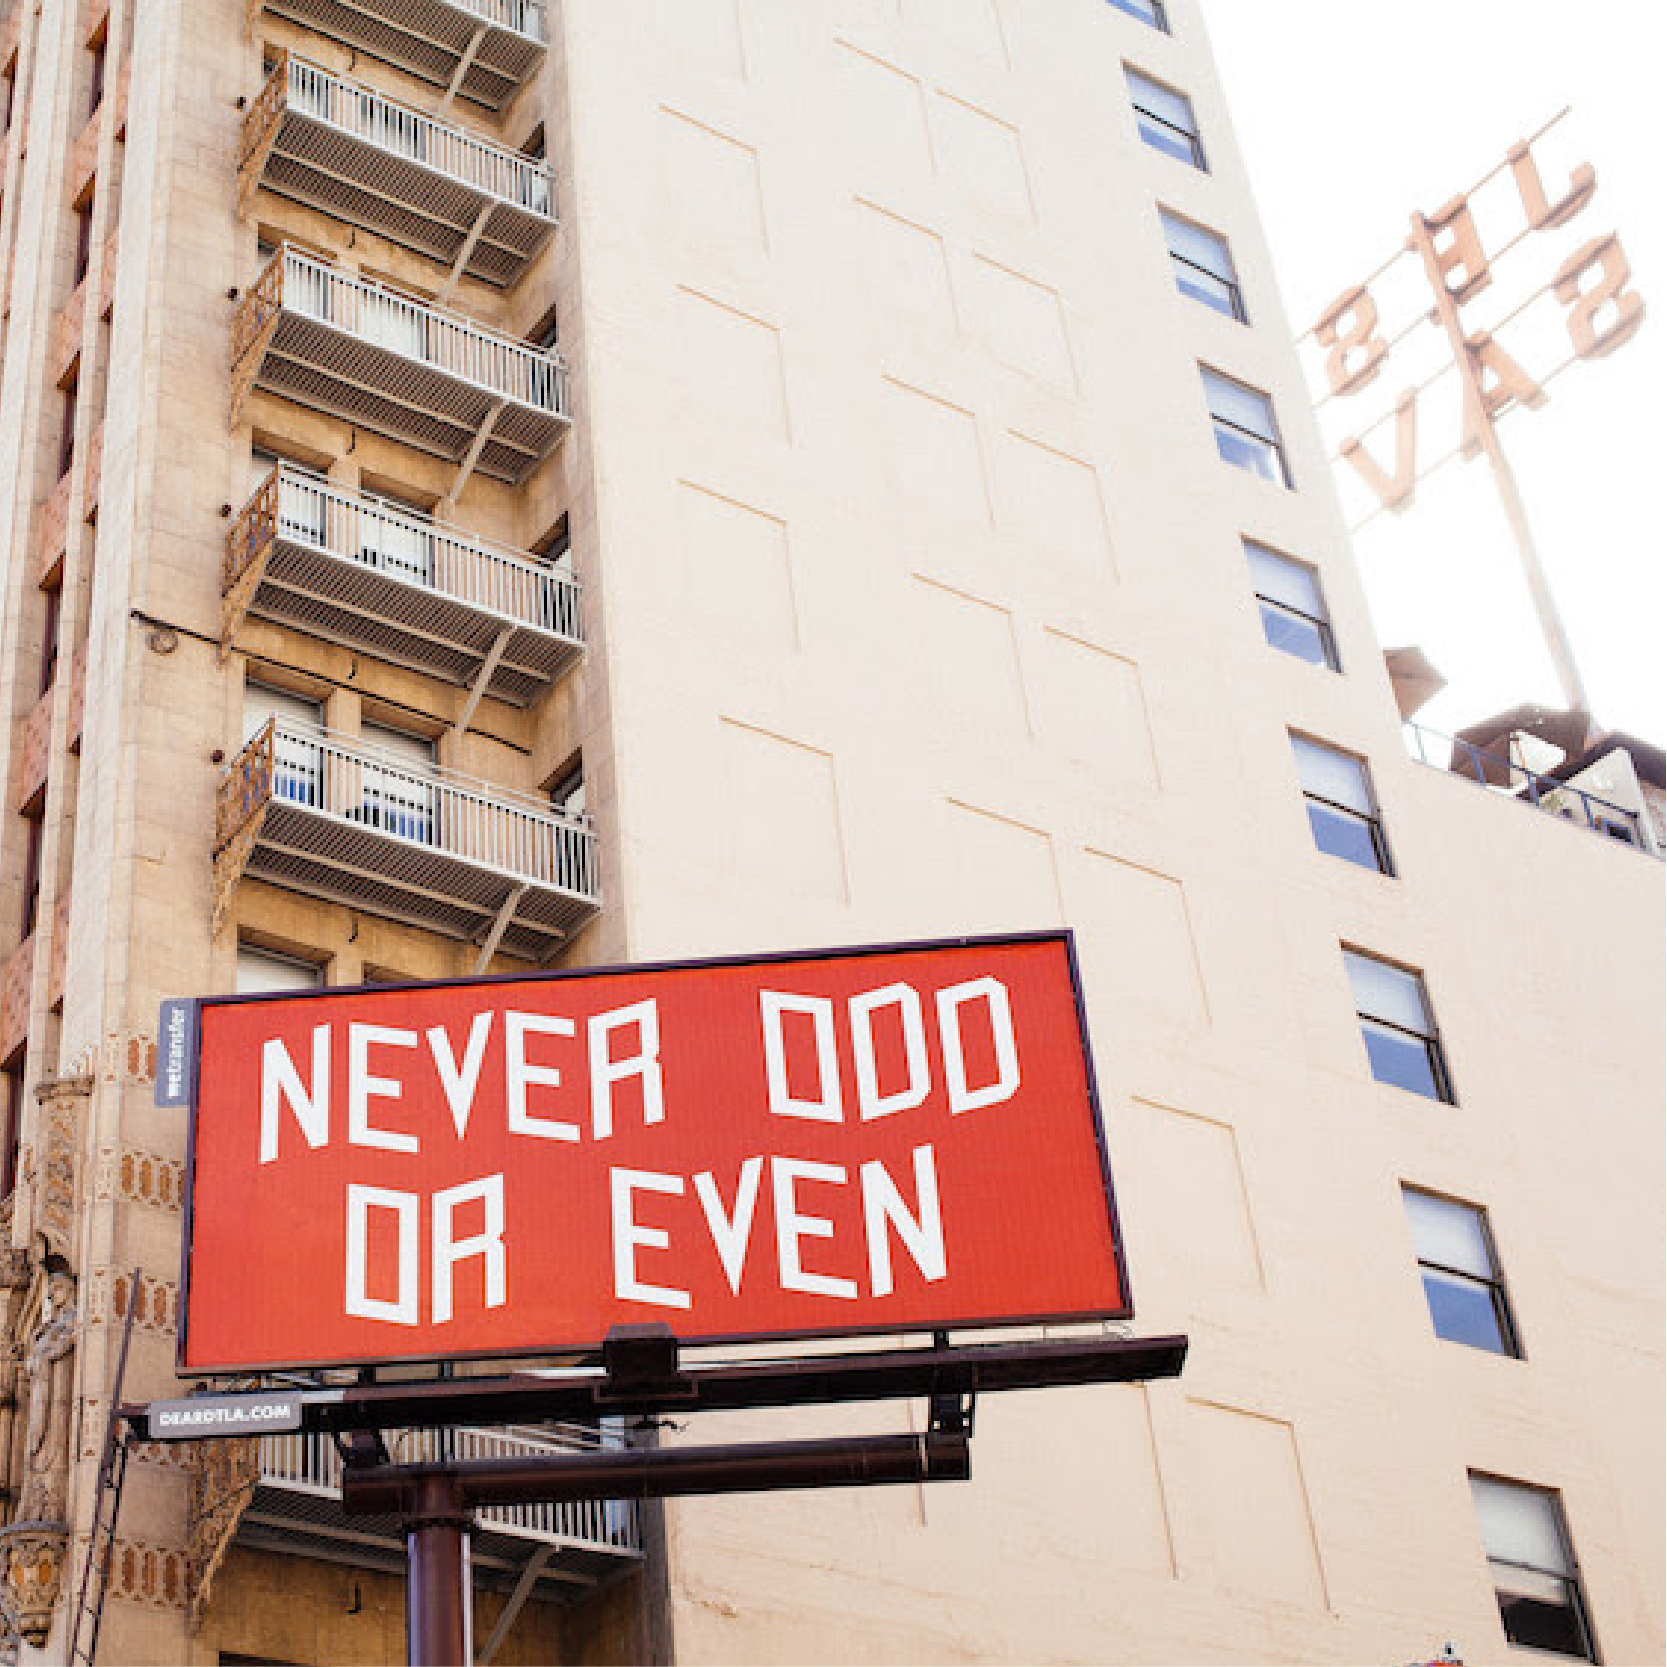 018 - Ace Hotel x WeTransfer.jpg